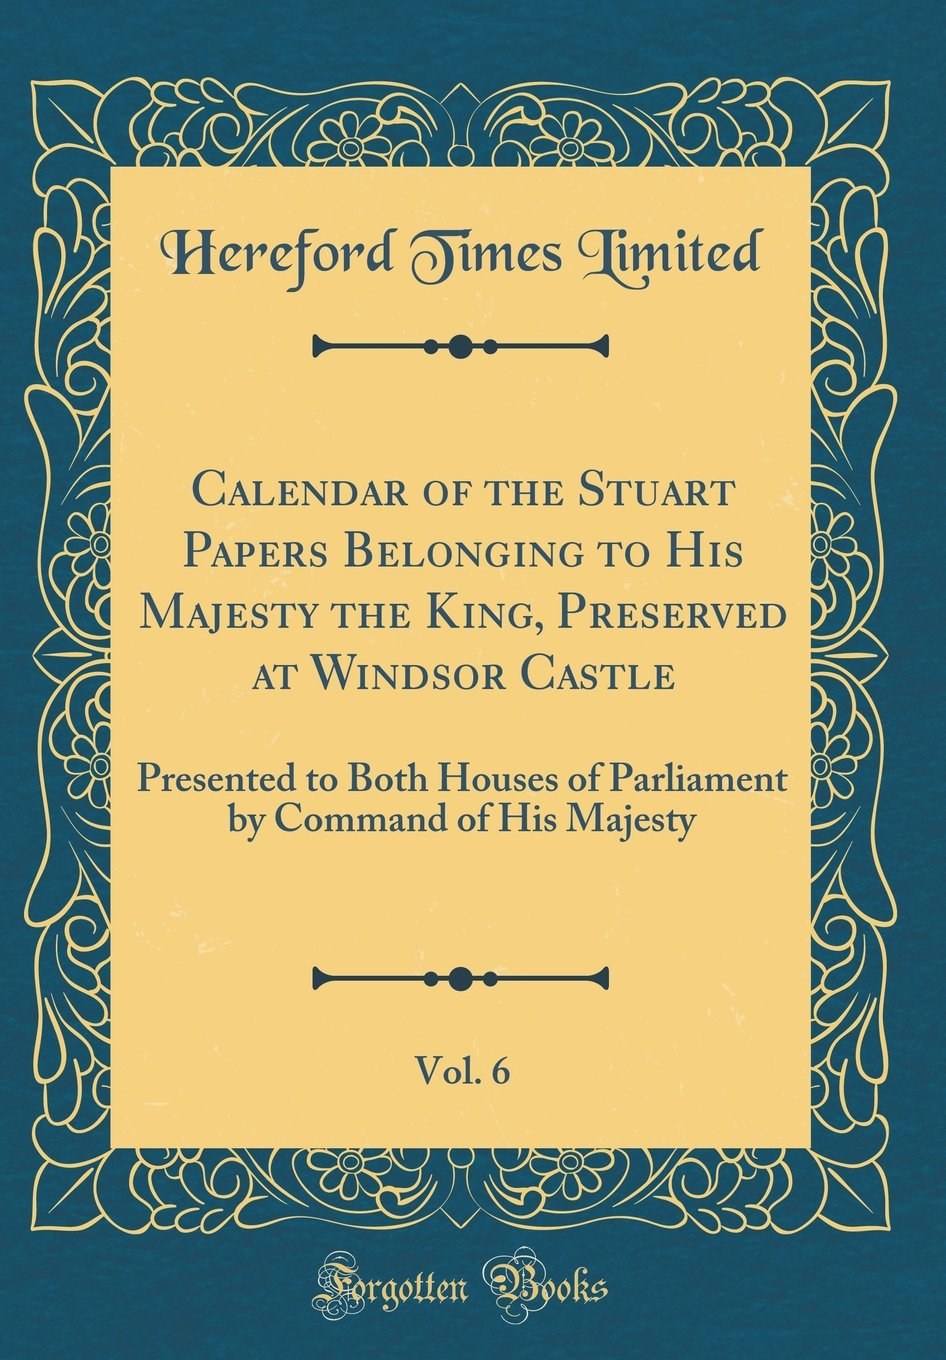 Download Calendar of the Stuart Papers Belonging to His Majesty the King, Preserved at Windsor Castle, Vol. 6: Presented to Both Houses of Parliament by Command of His Majesty (Classic Reprint) PDF Text fb2 ebook